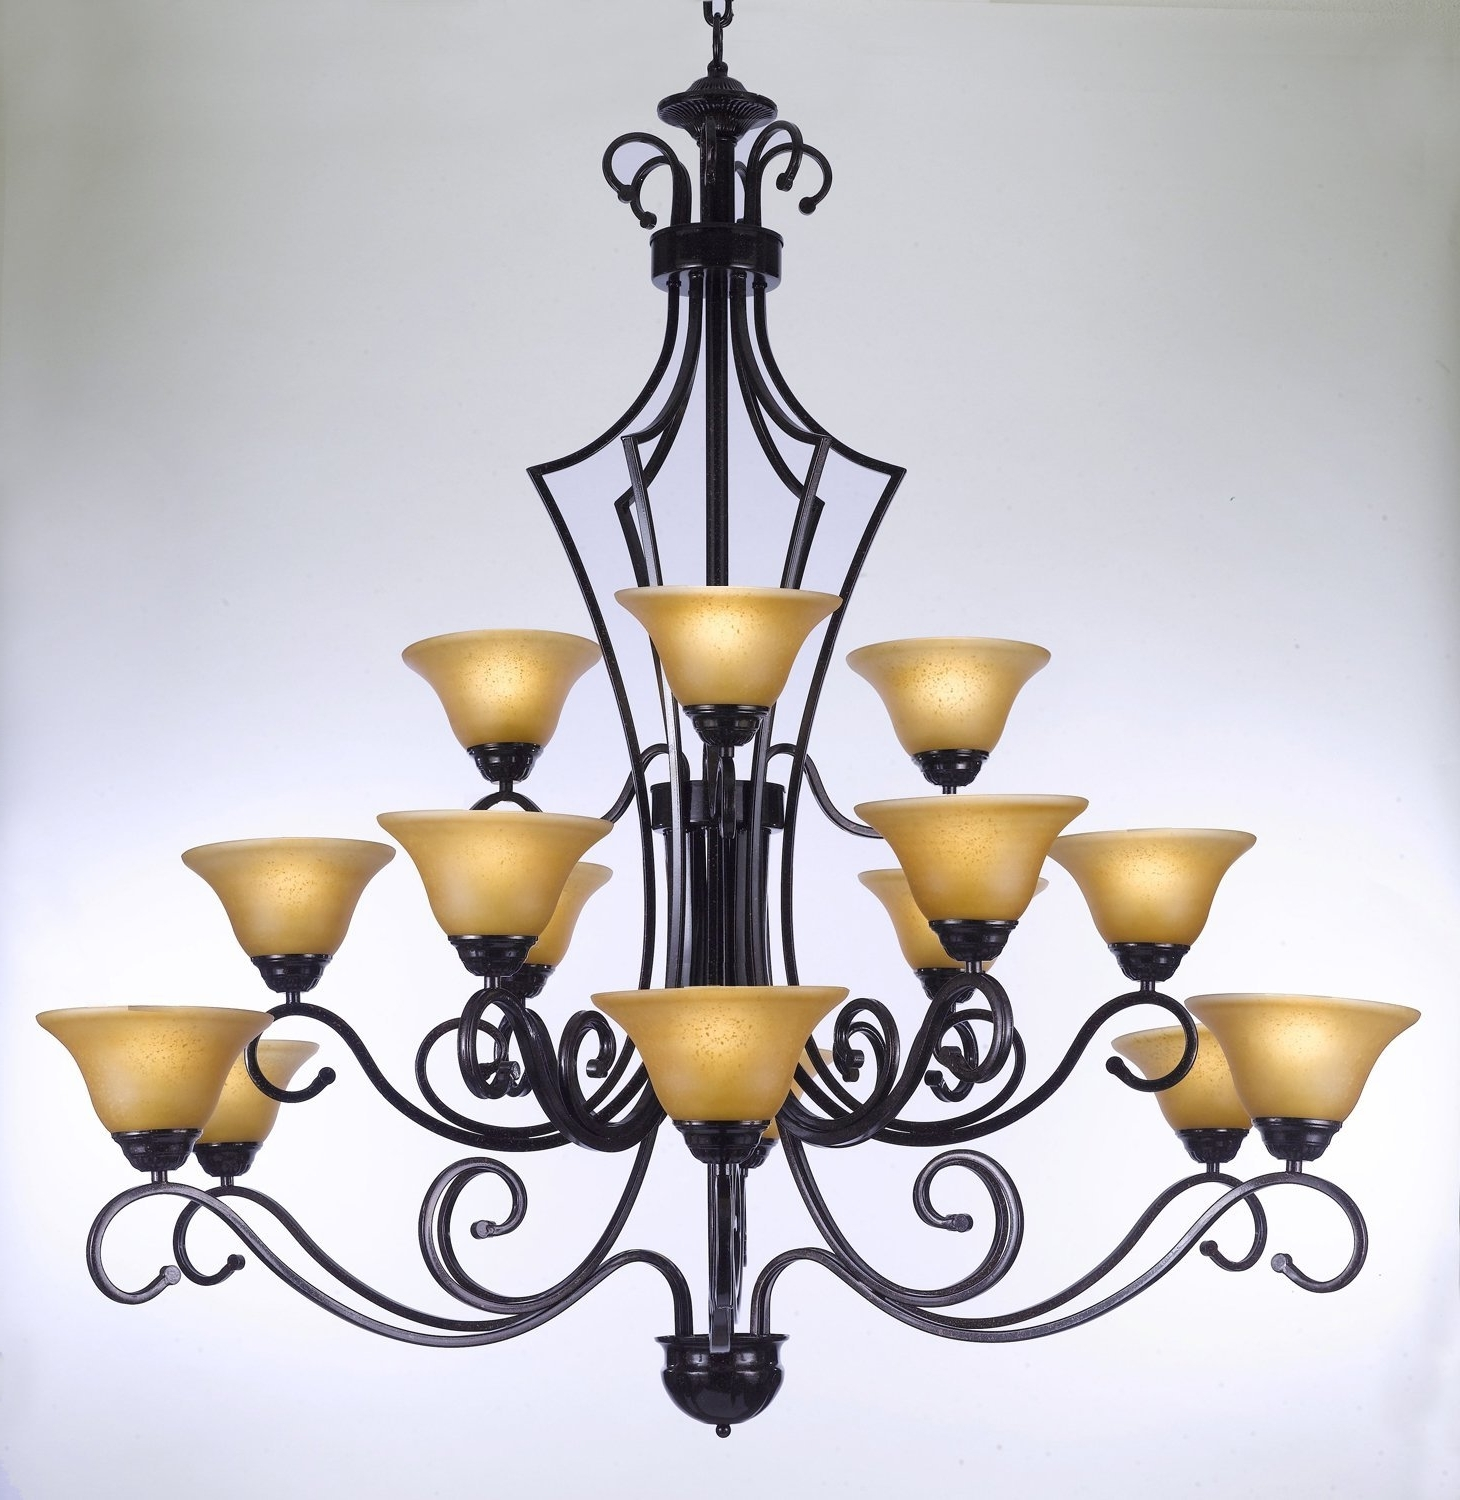 """Current Modern Wrought Iron Chandeliers With Regard To Large Foyer Or Entryway Wrought Iron Chandelier H51"""" X W (View 9 of 15)"""